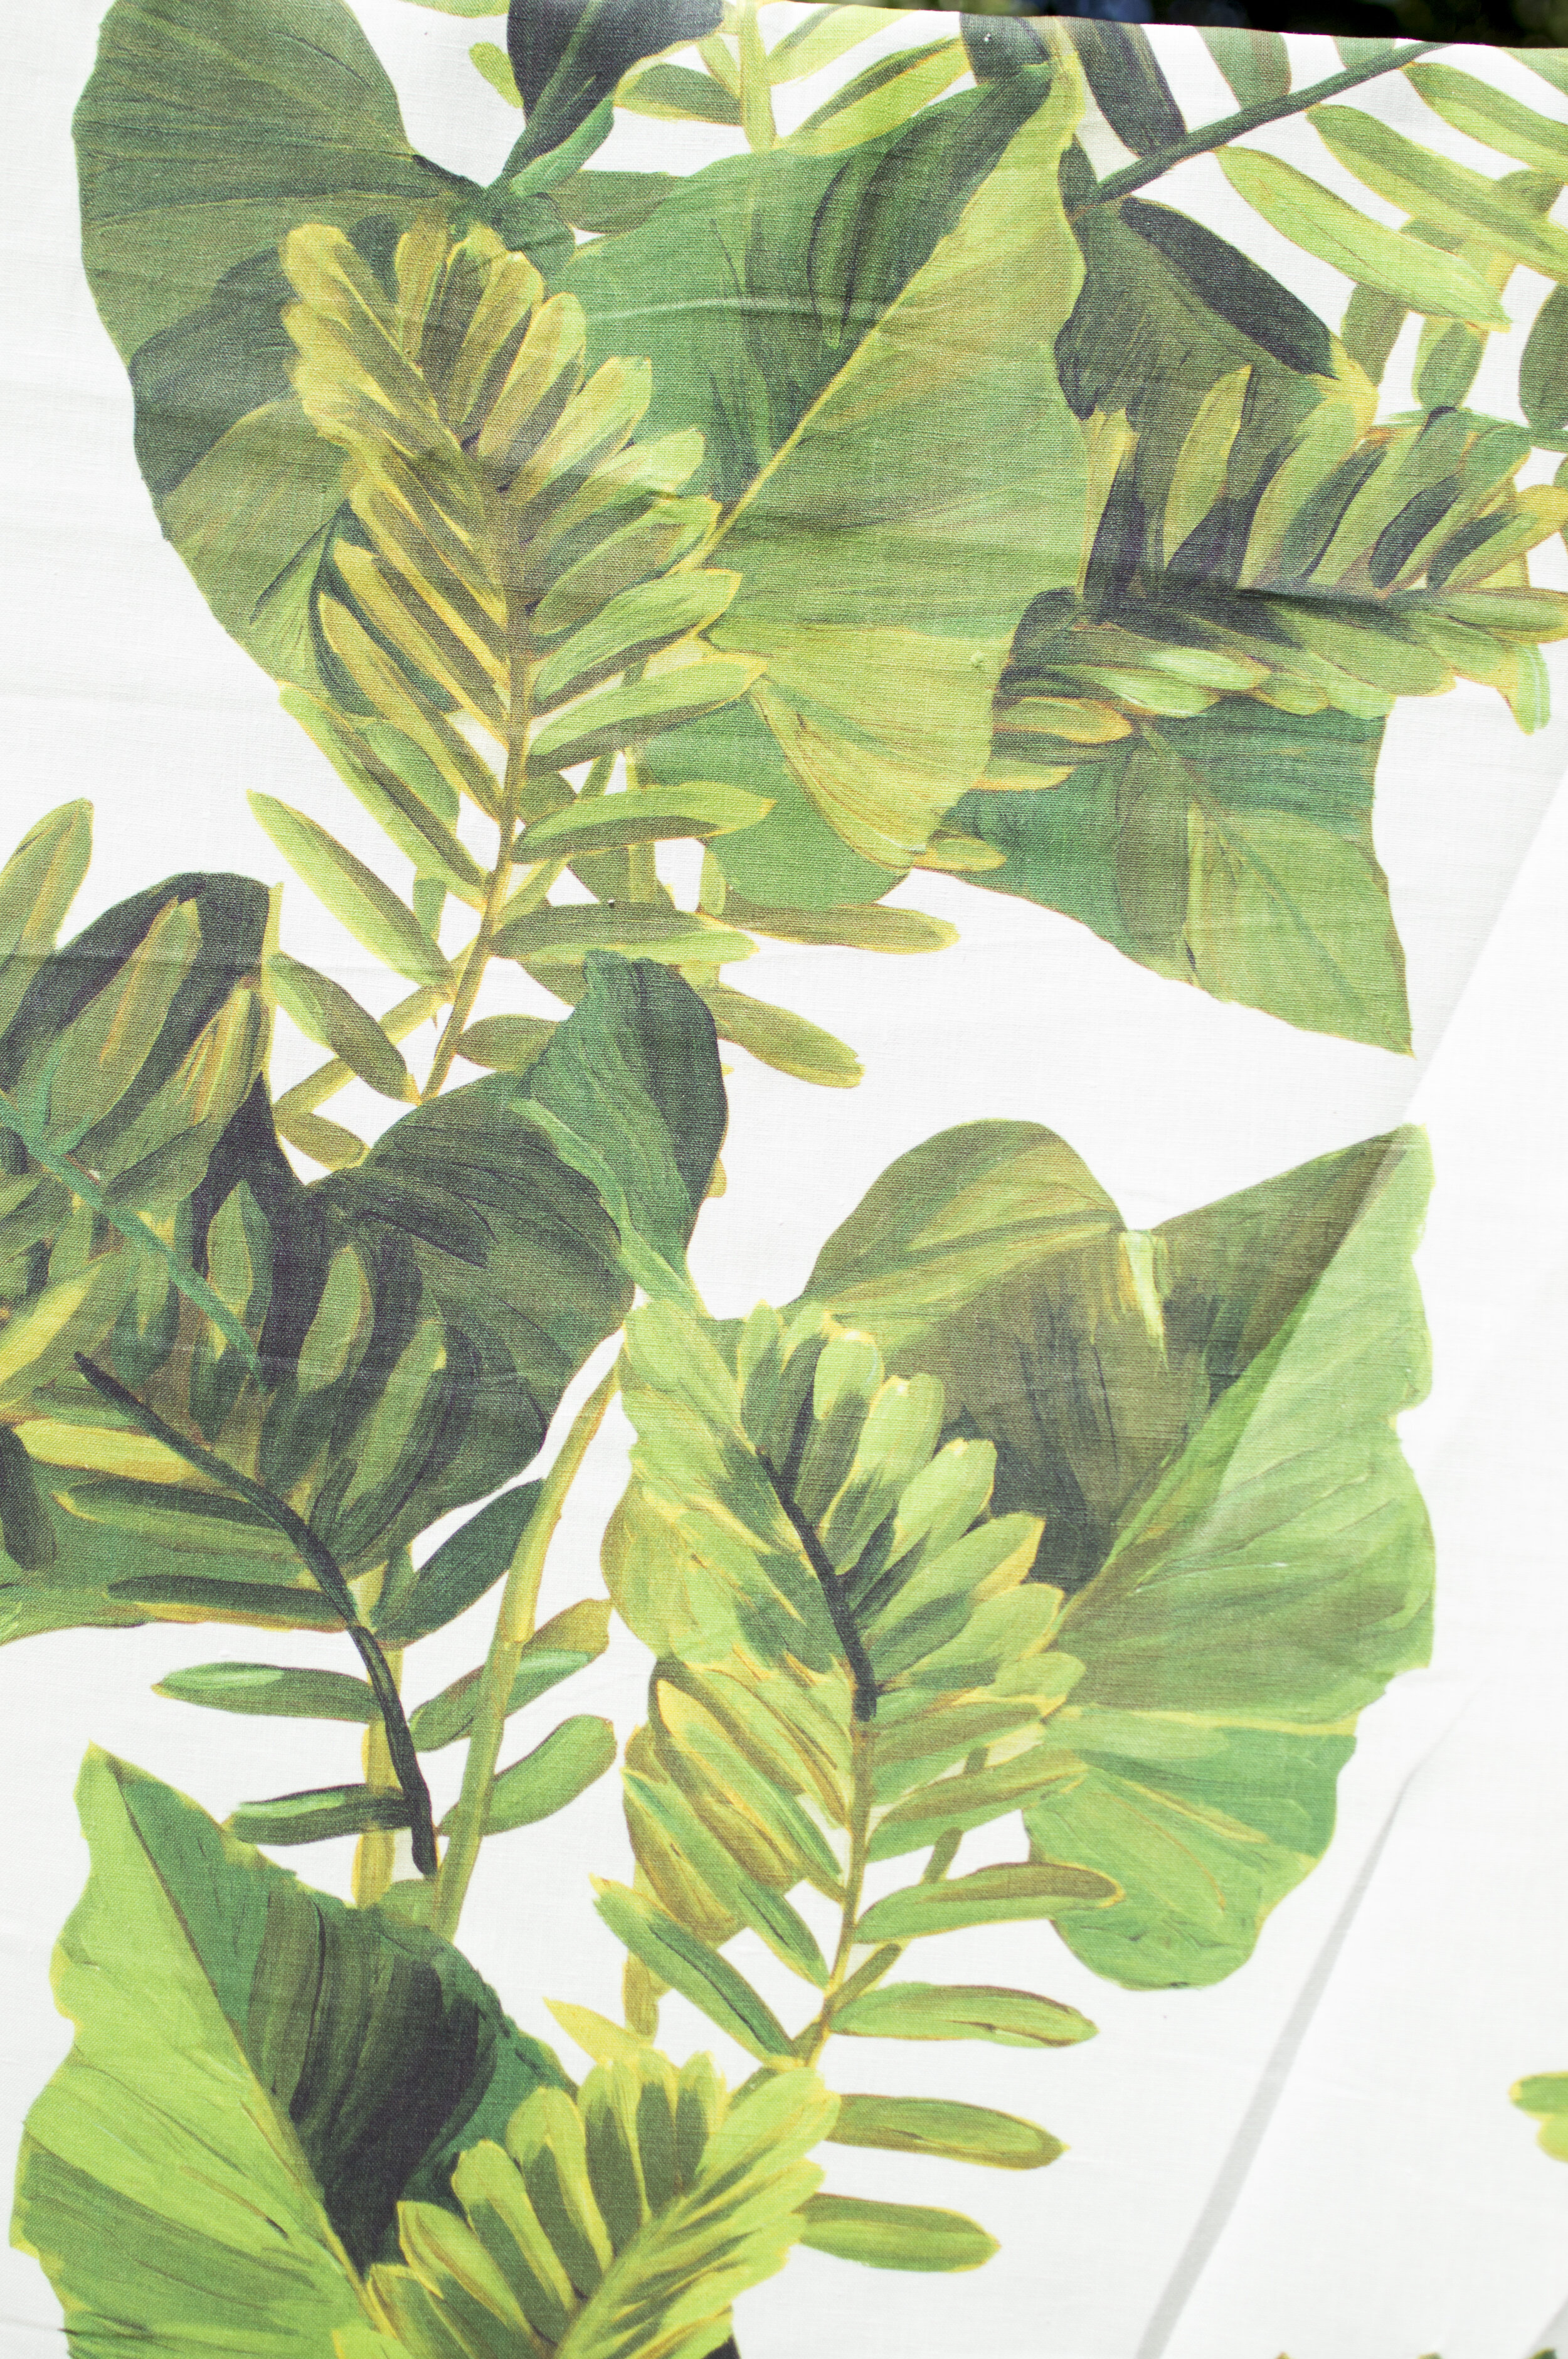 Foliage | JUNGLE  Two tropical leaves, carefully layered to add depth and create rich shades of green. This lush print captures the essence of a perfectly warm and sultry summer.